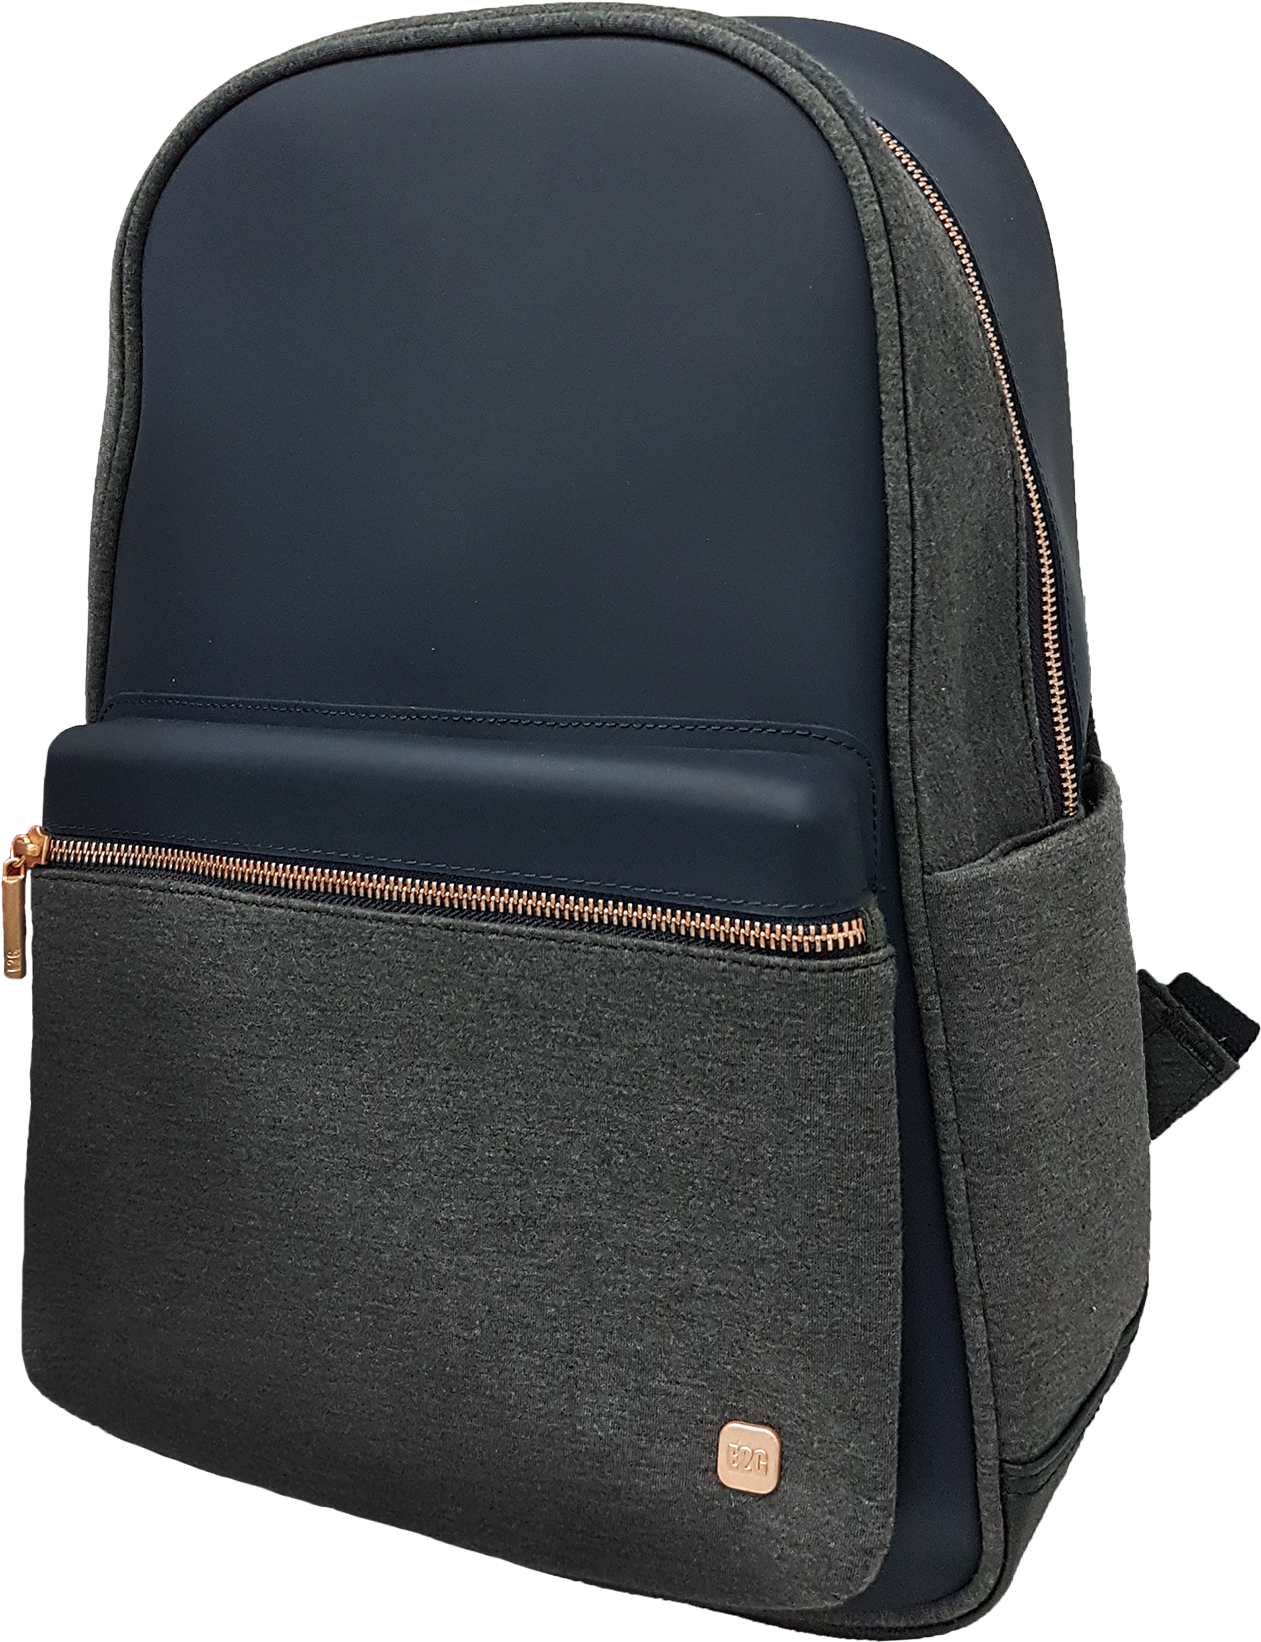 vector library library bookbag drawing backpack herschel #90688312